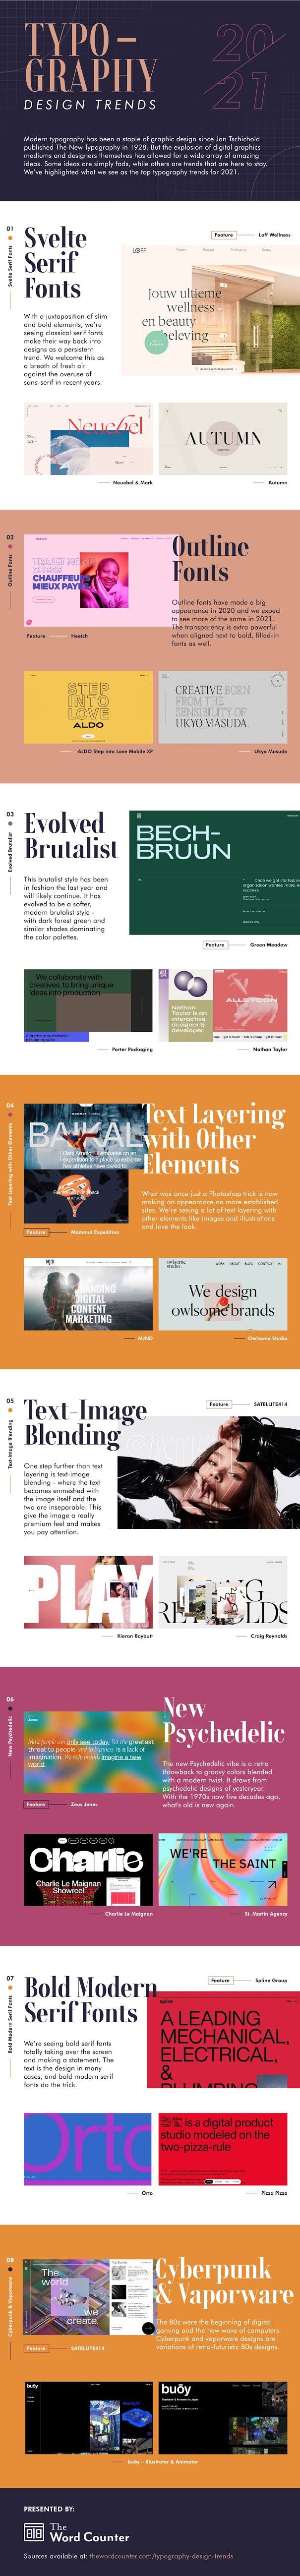 8 Typography Design Trends for 2021 #infographic #Design #infographics #Design Trends #Typography Design